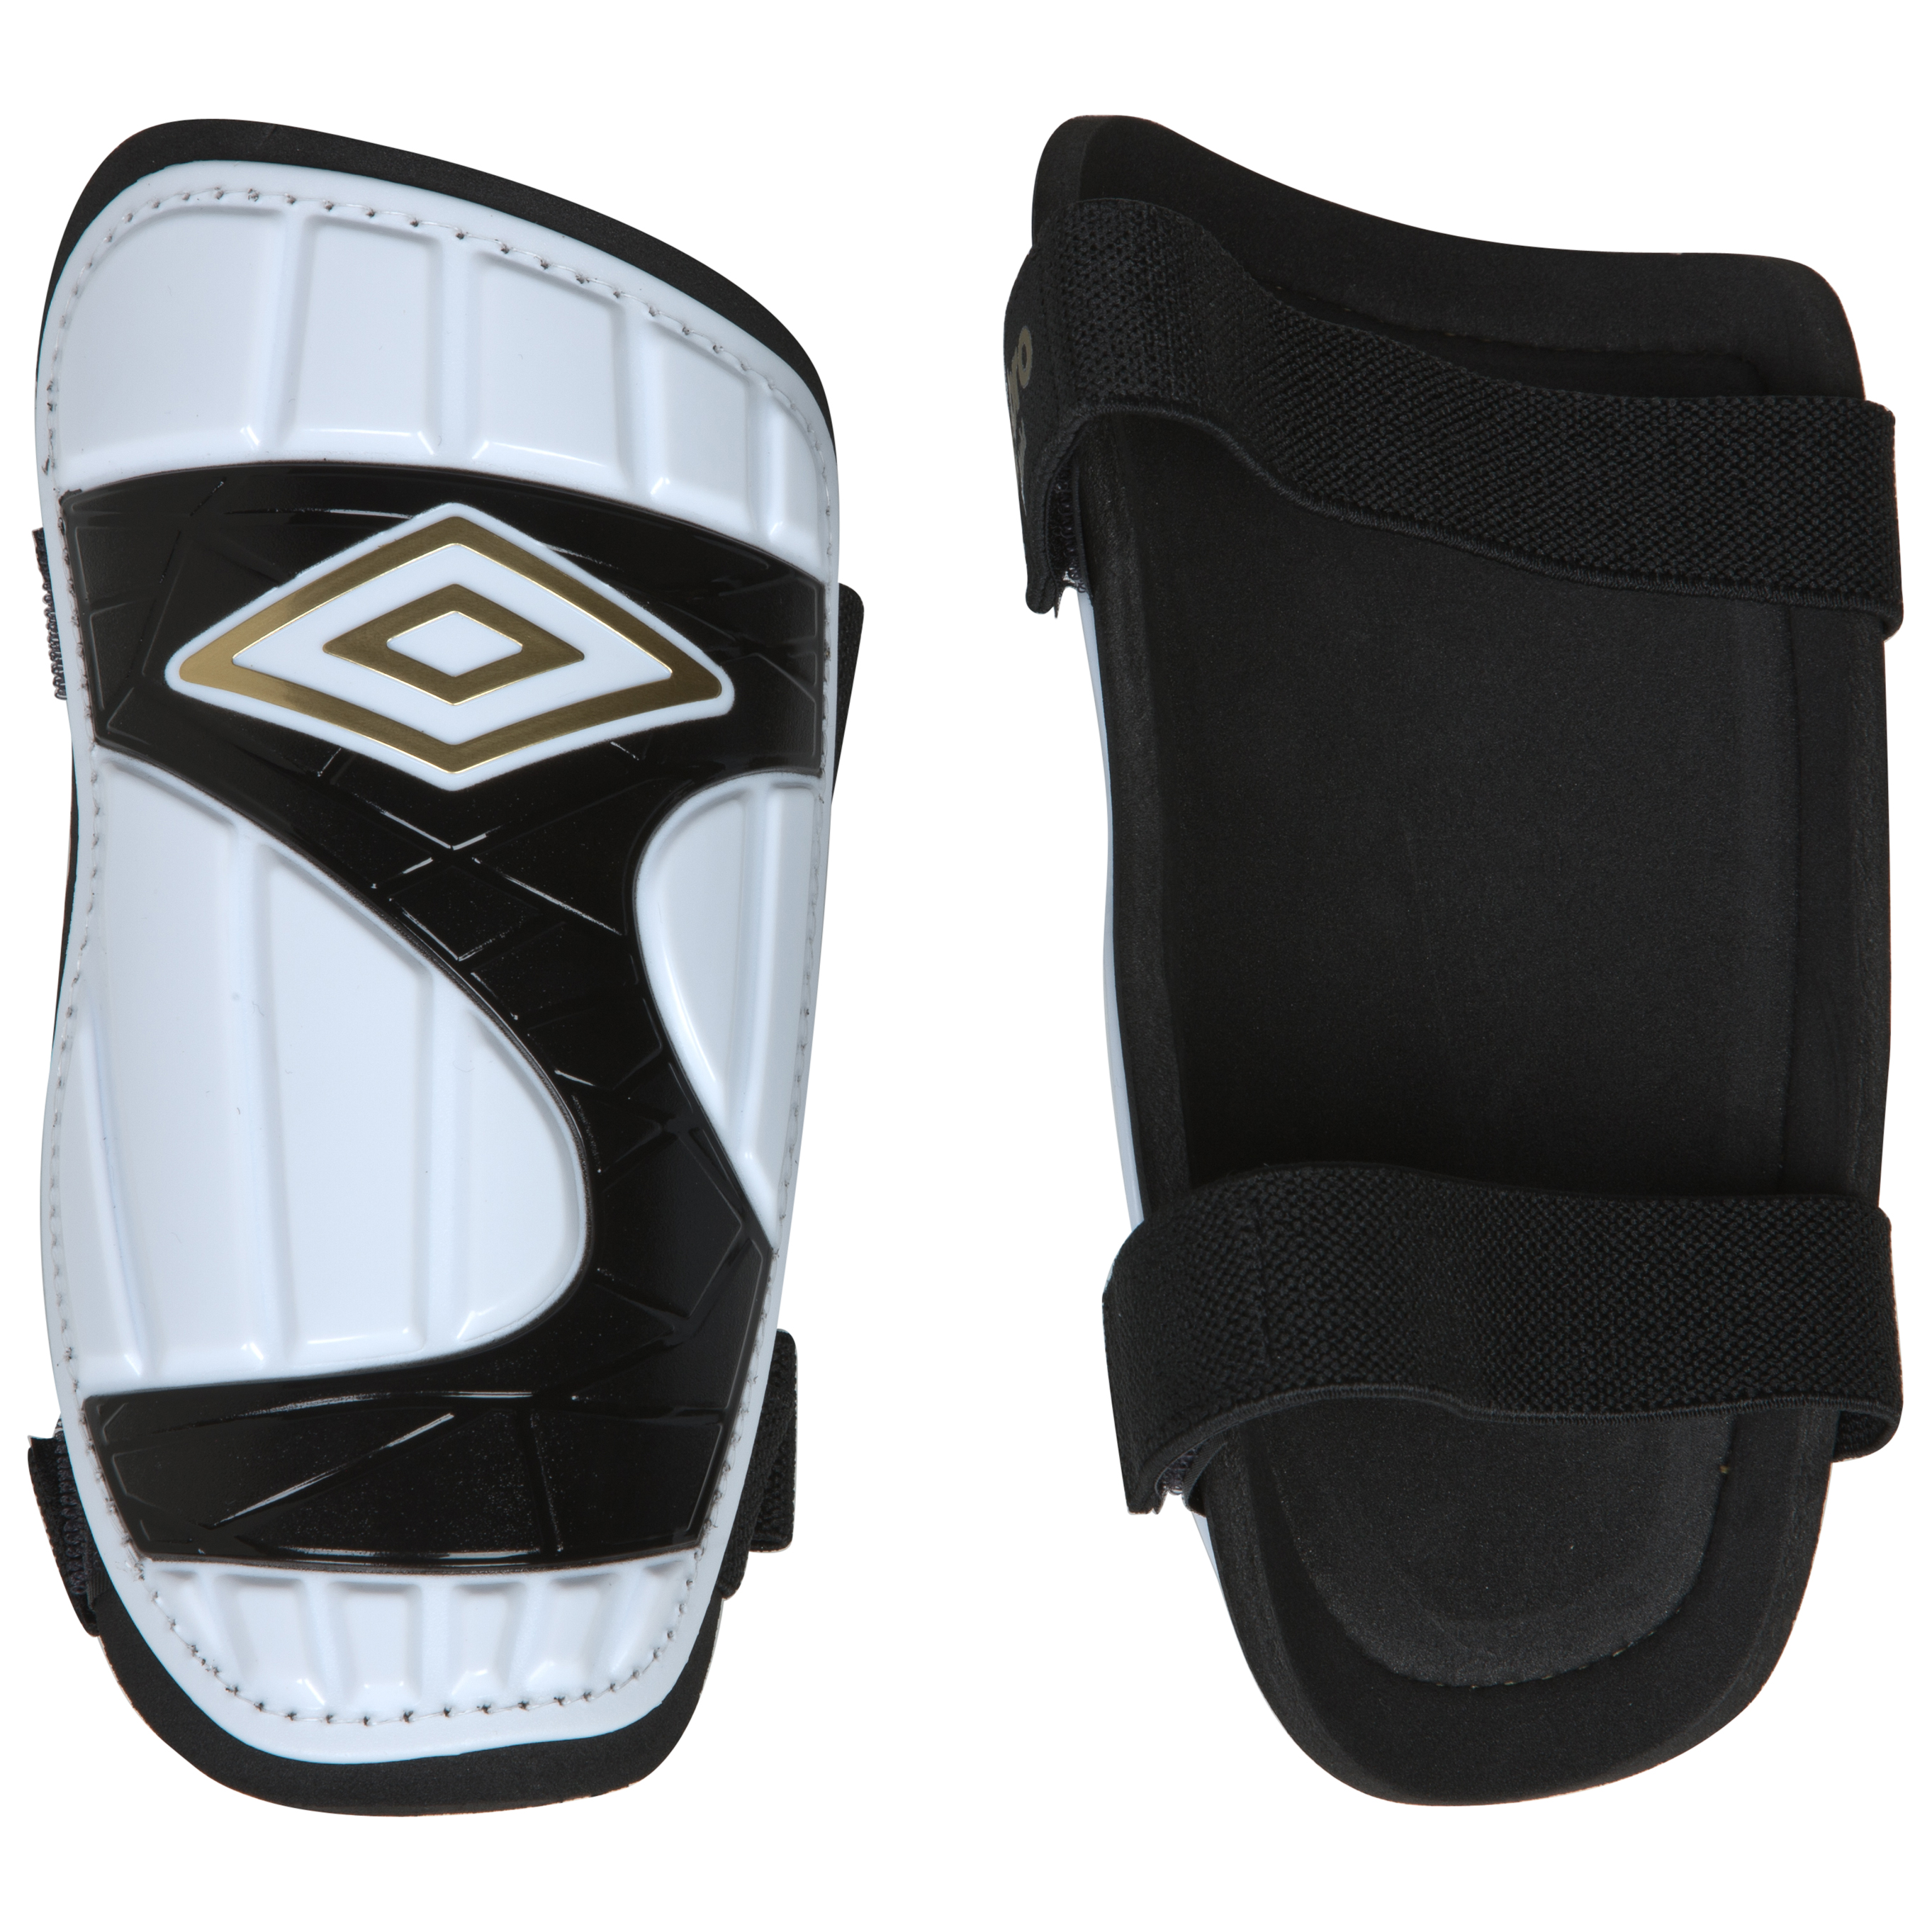 Umbro Neo Slip Shin Pads - White/Black/Gold